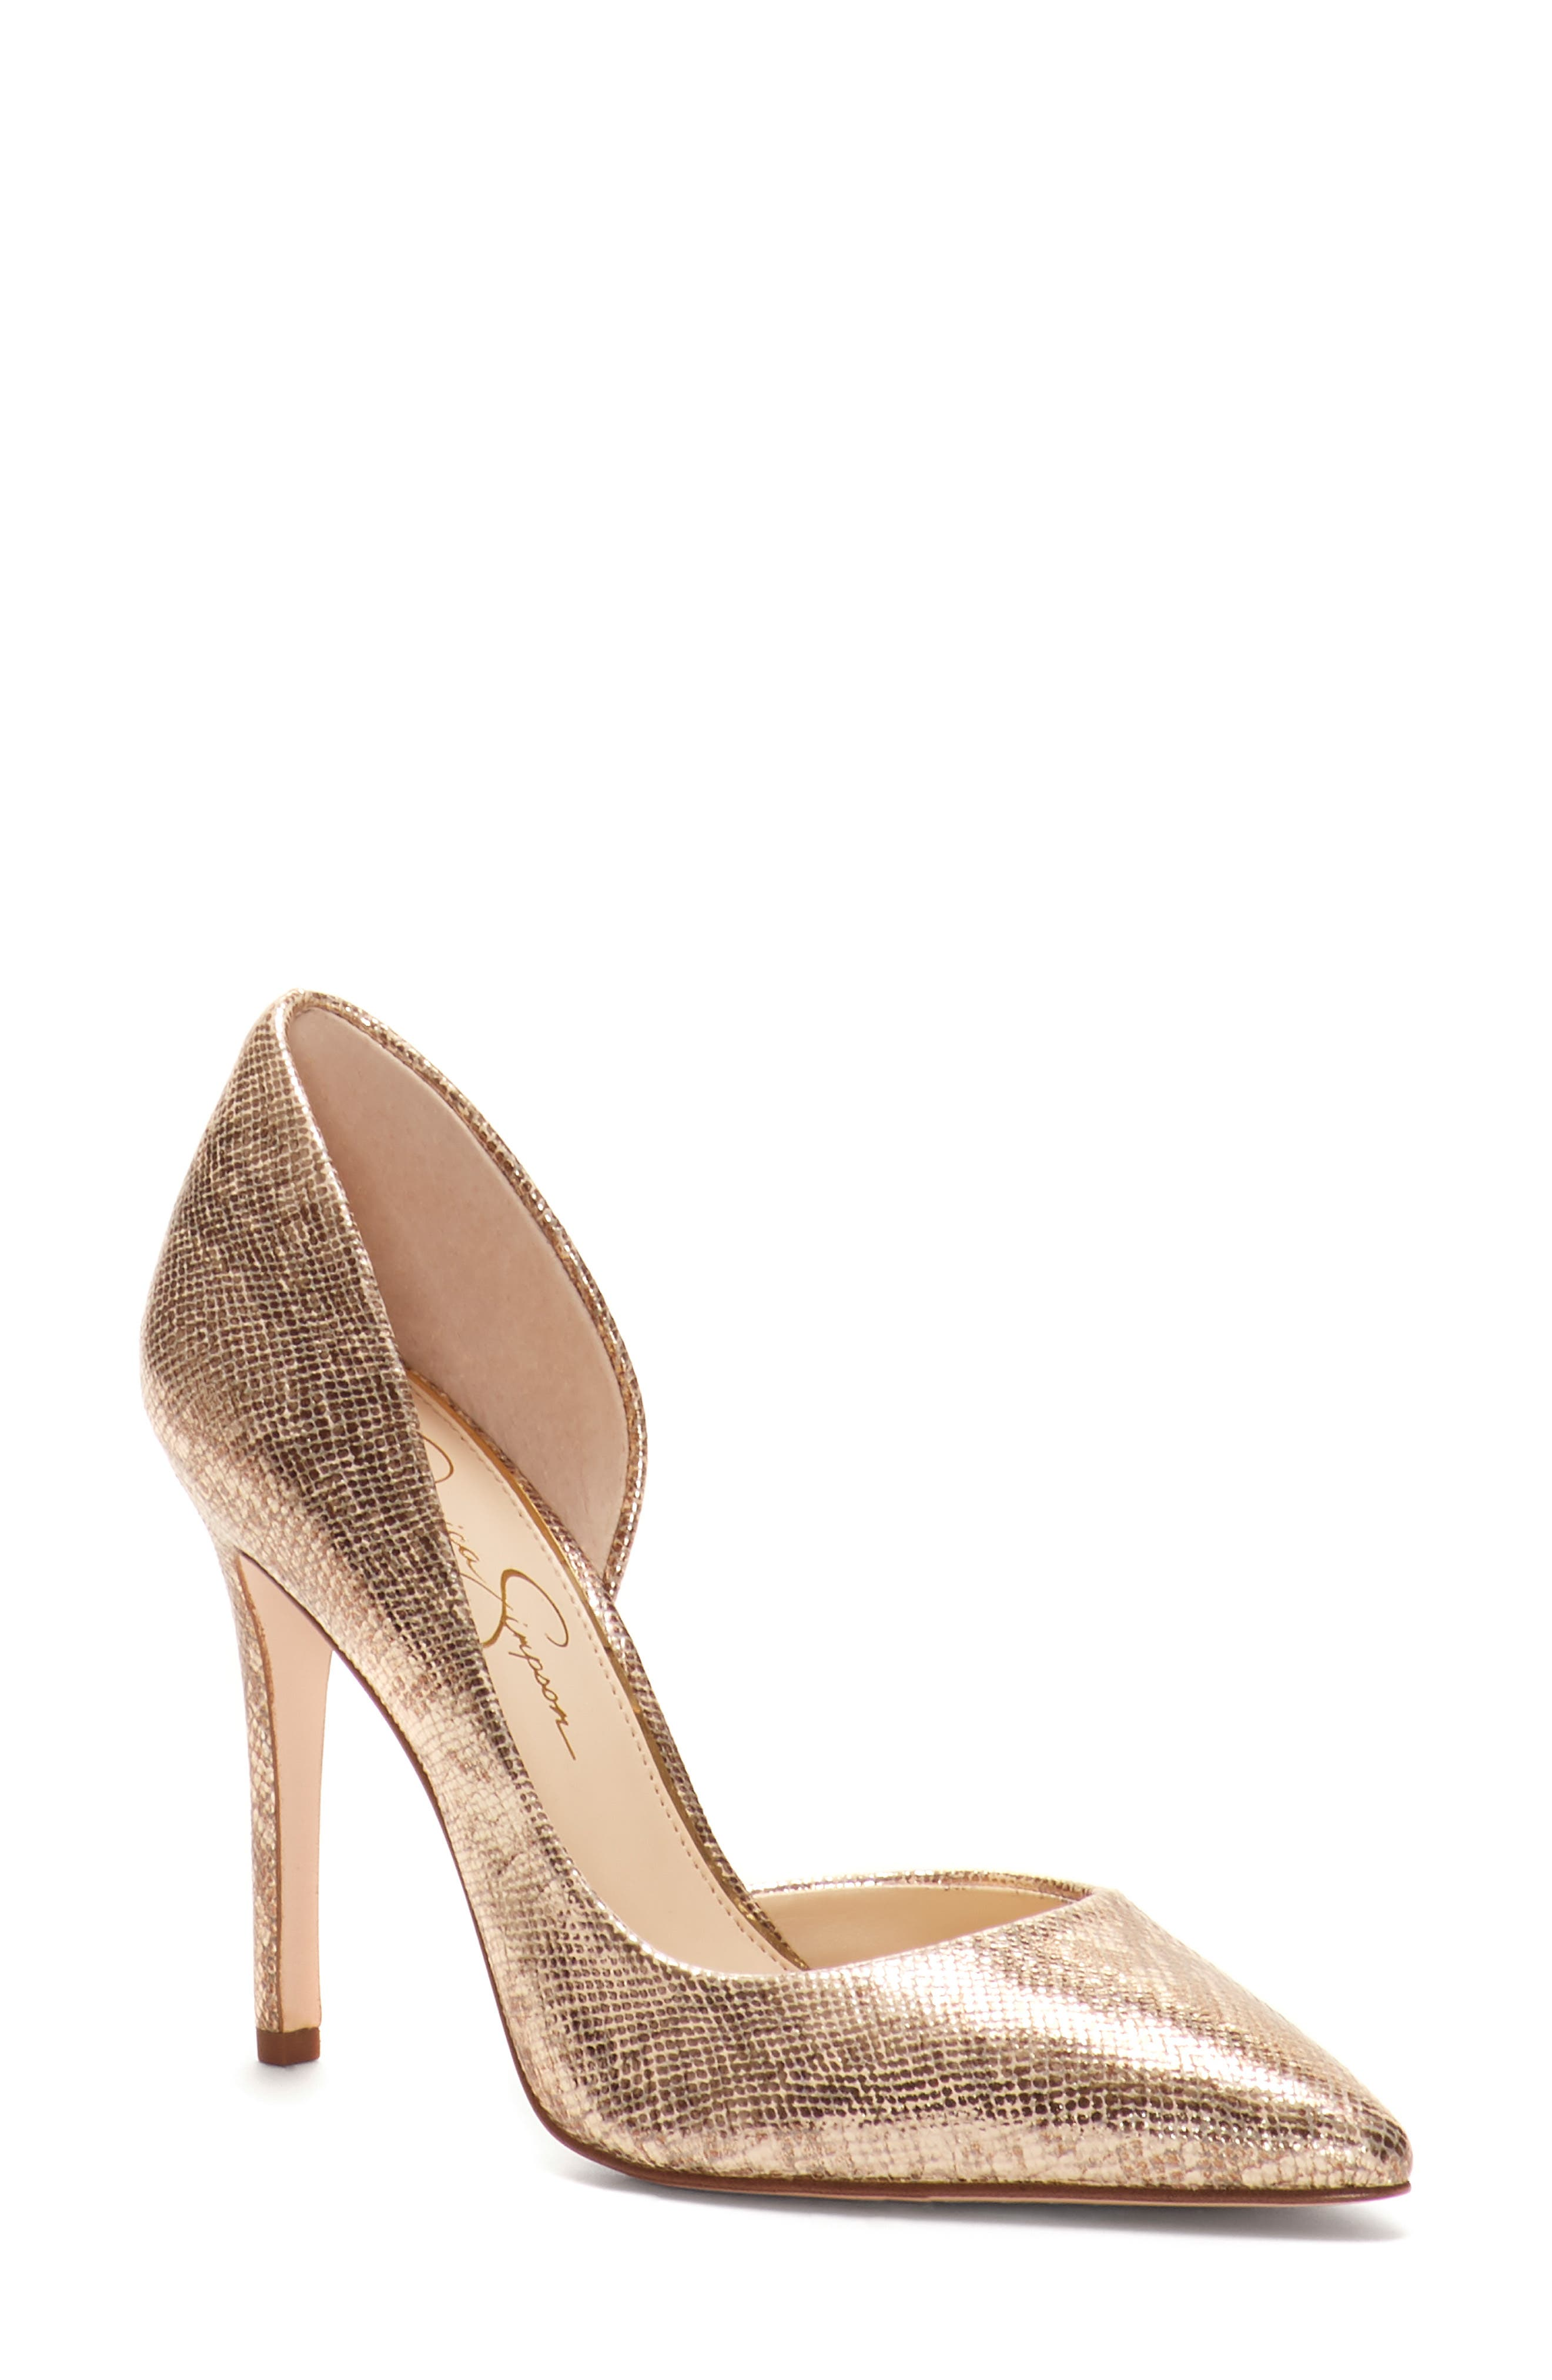 JESSICA SIMPSON,                             Pheona Pump,                             Main thumbnail 1, color,                             KARAT GOLD